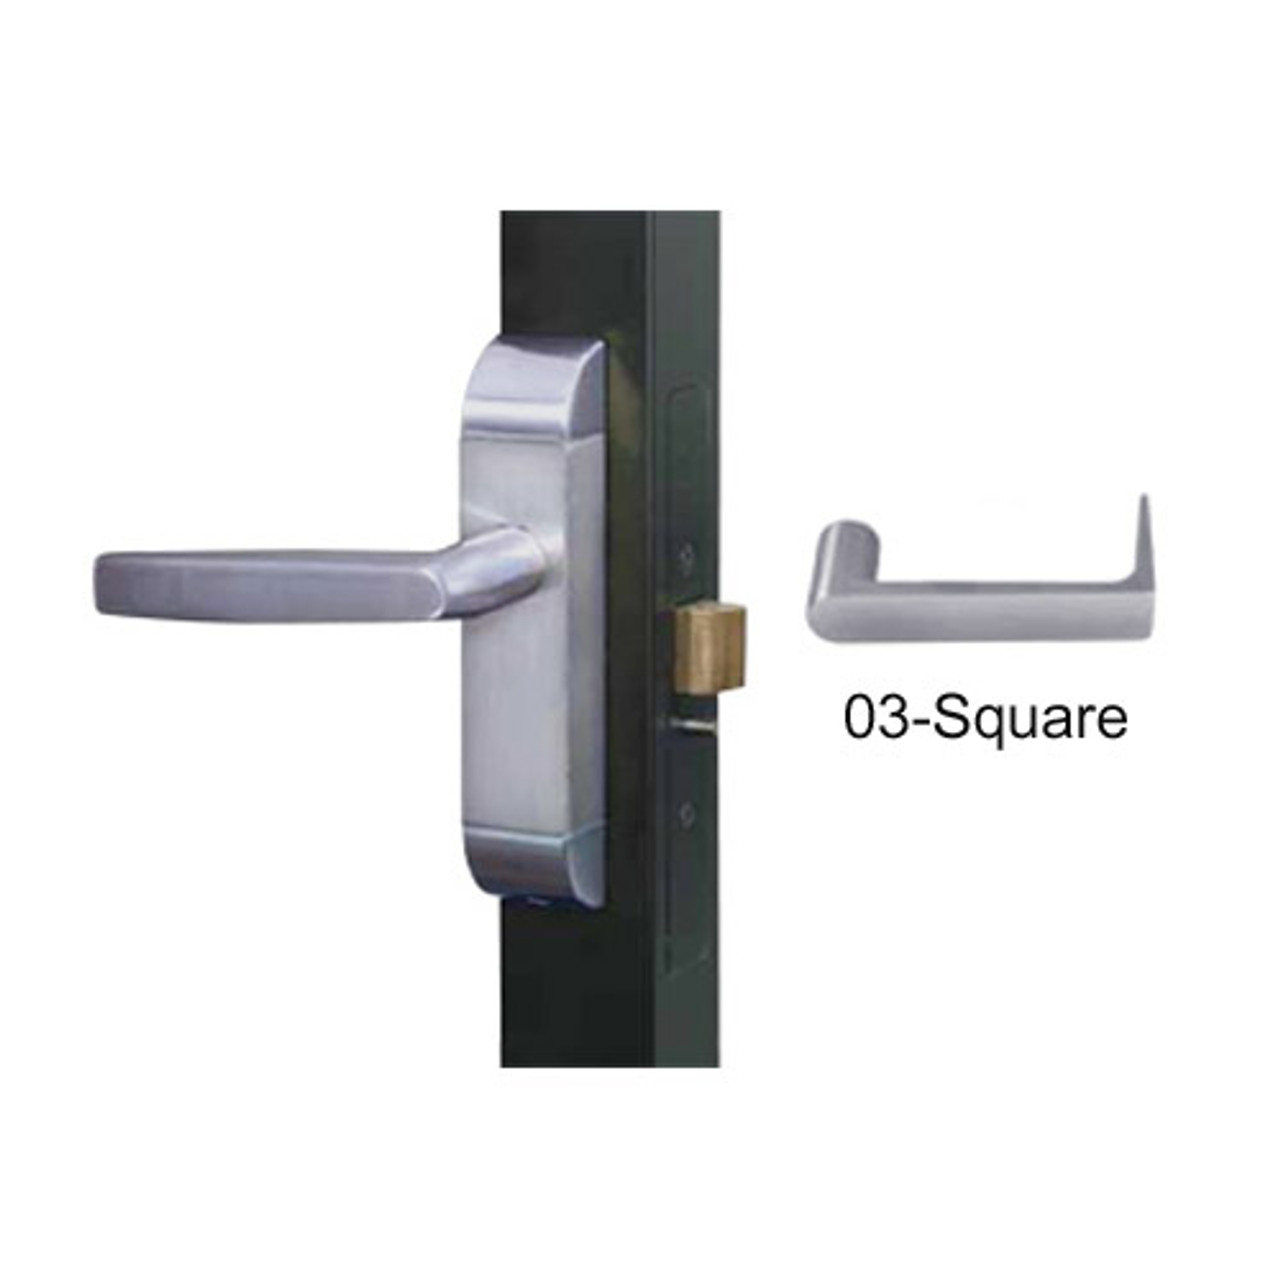 4600M-03-532-US32D Adams Rite Heavy Duty Square Deadlatch Handles in Satin Stainless Finish